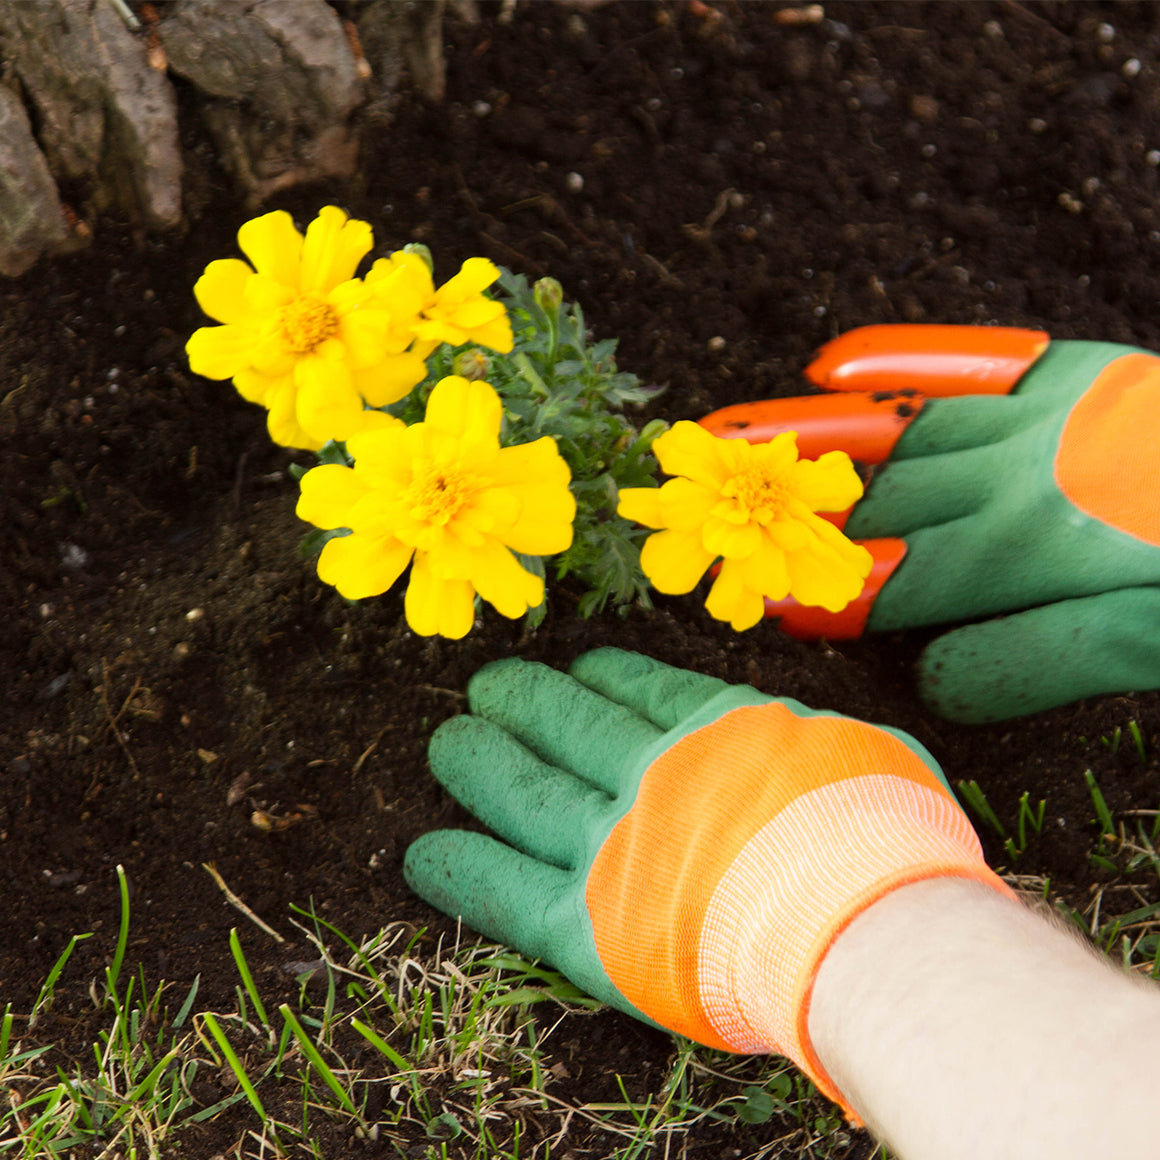 Yard Hands | Gardening gloves | Dig, plant, flatten and rake with complete protection